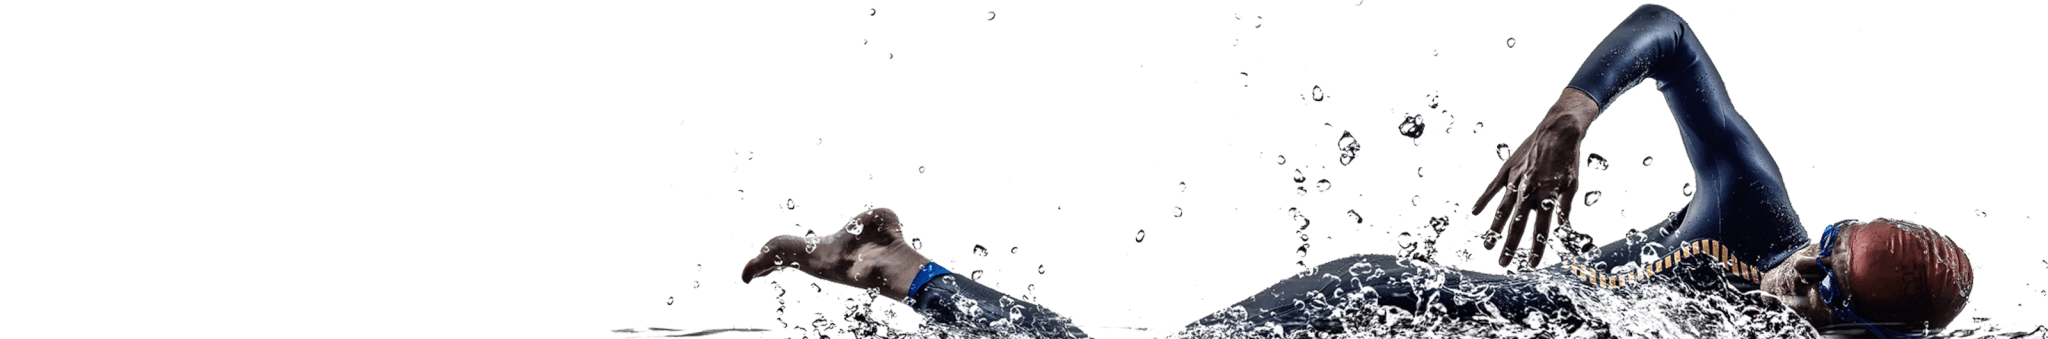 http://www.rainerhauch.ch/wp-content/uploads/inner_swimmer.png